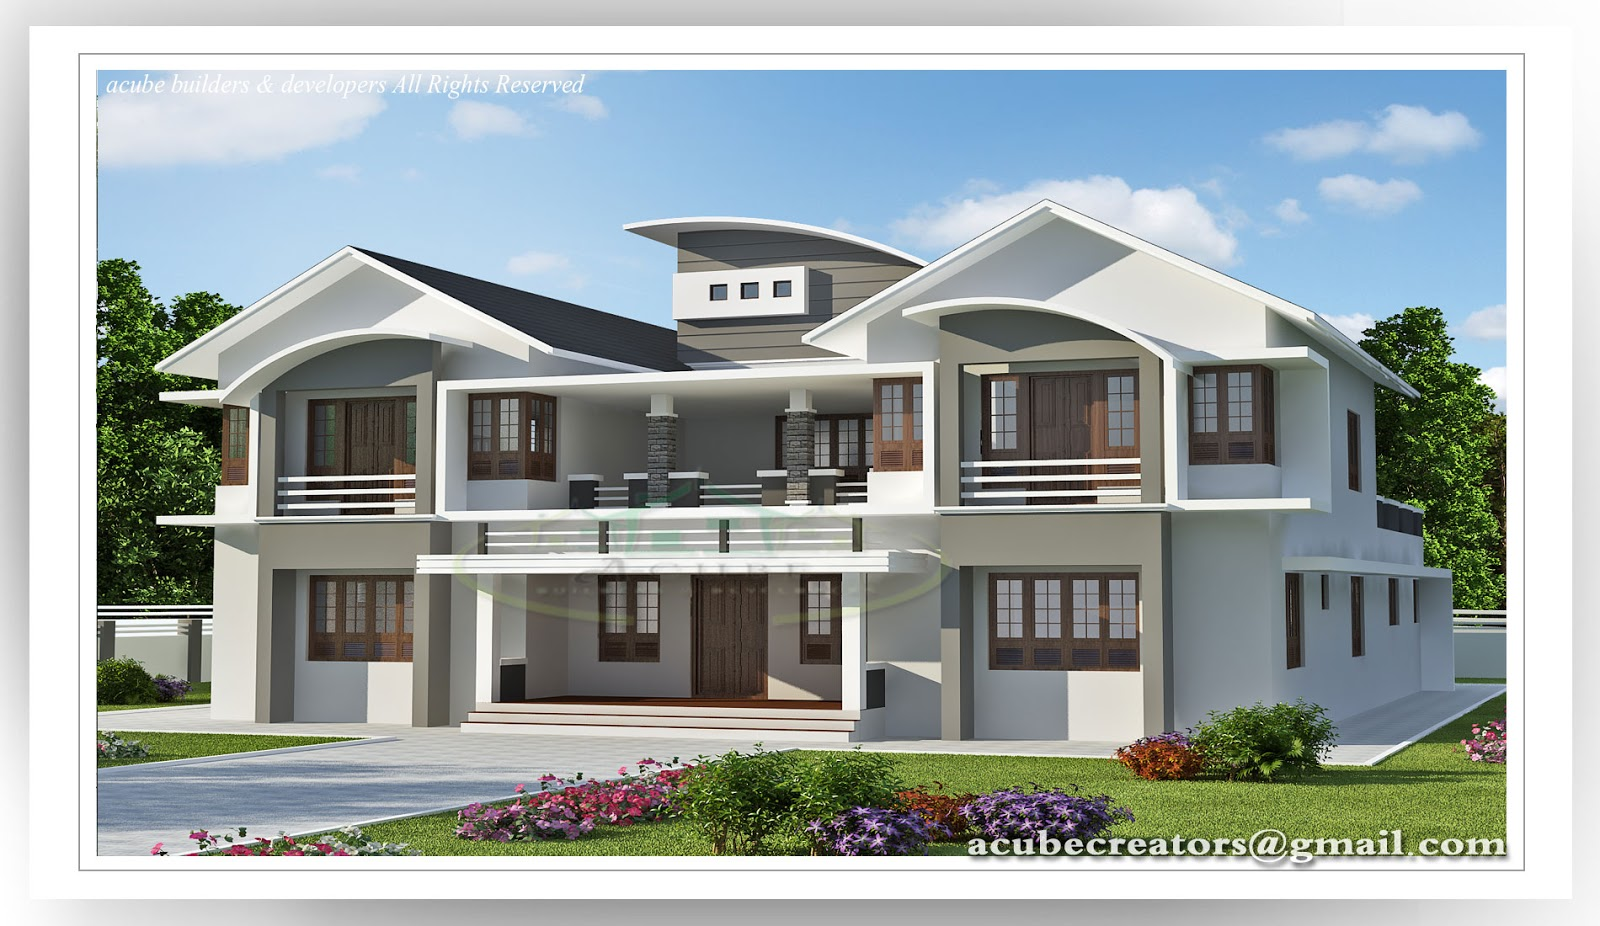 6 bedroom luxury villa design 5091 plan 149 for 6 bedroom house plans